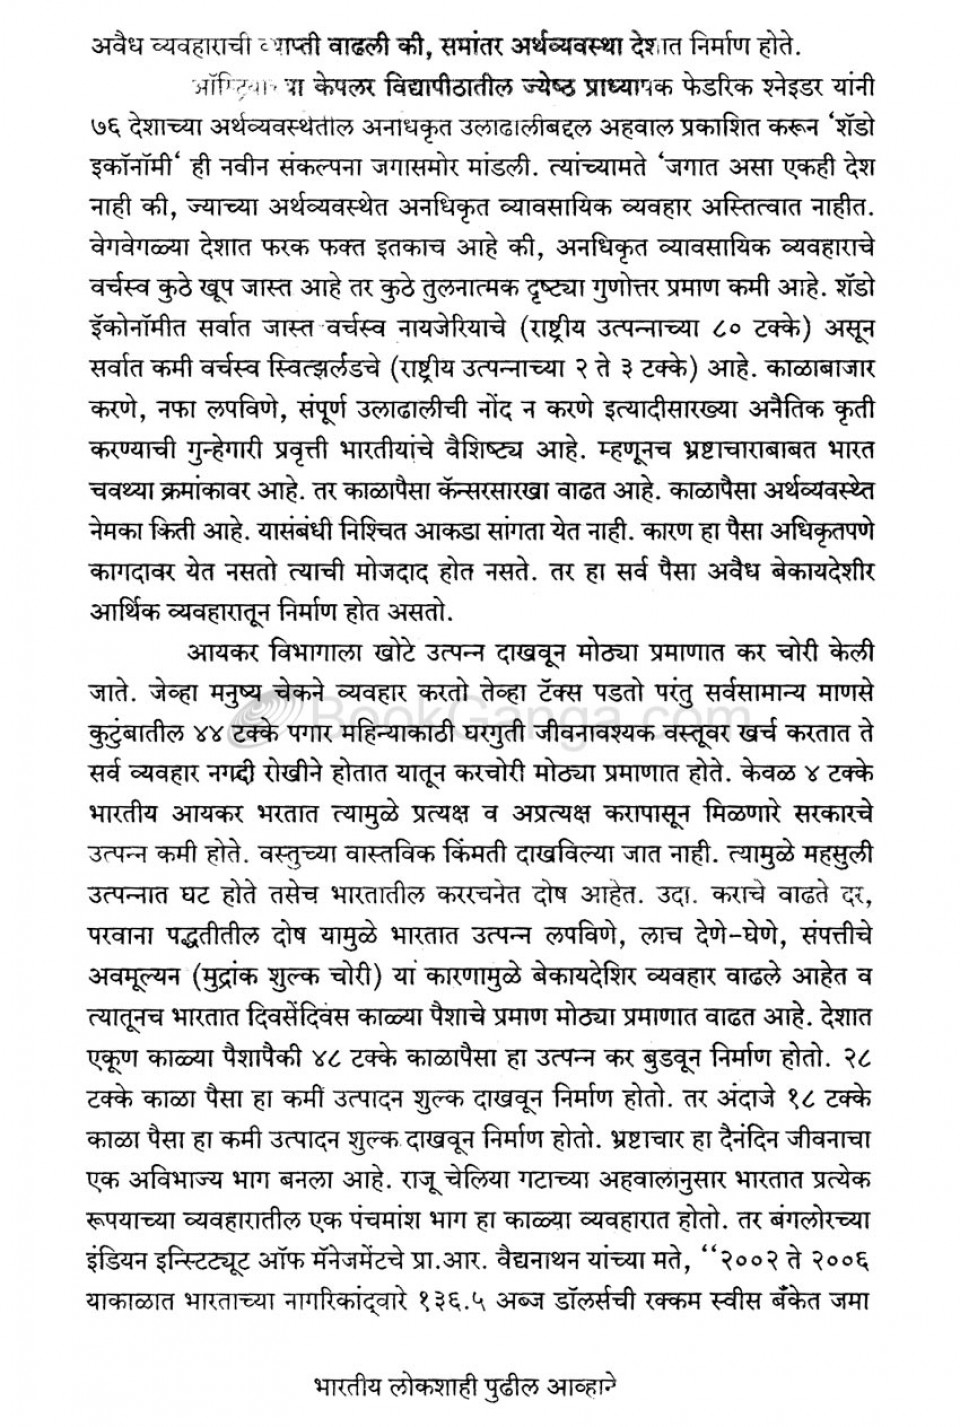 015 Marathi Essay On Rain Example Formidable First Day Of In Language Writing Rainy Season Wikipedia 960